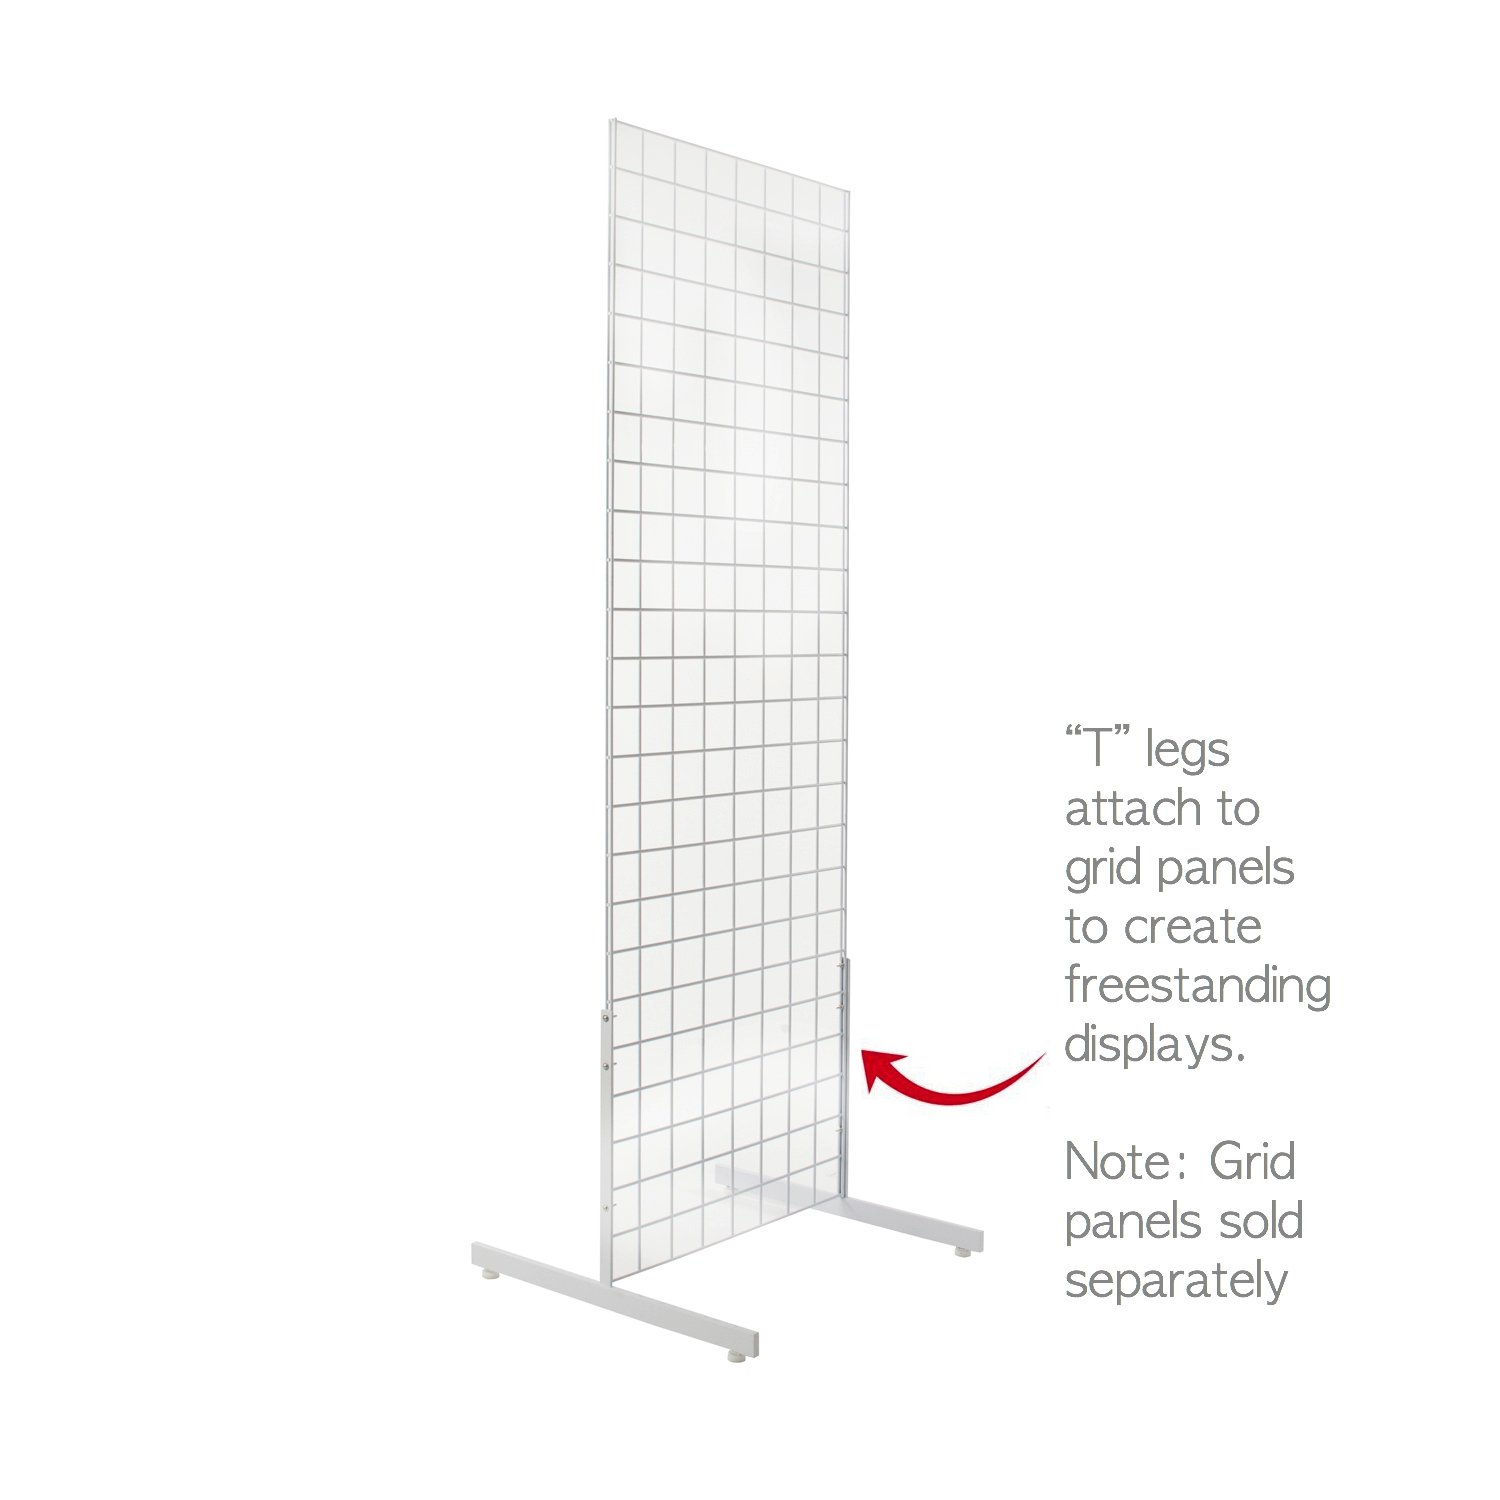 White Gridwall T Base Rectangular Tube With Levelers (Set of 3 Pairs) White Finish ... by Only Hangers (Image #3)